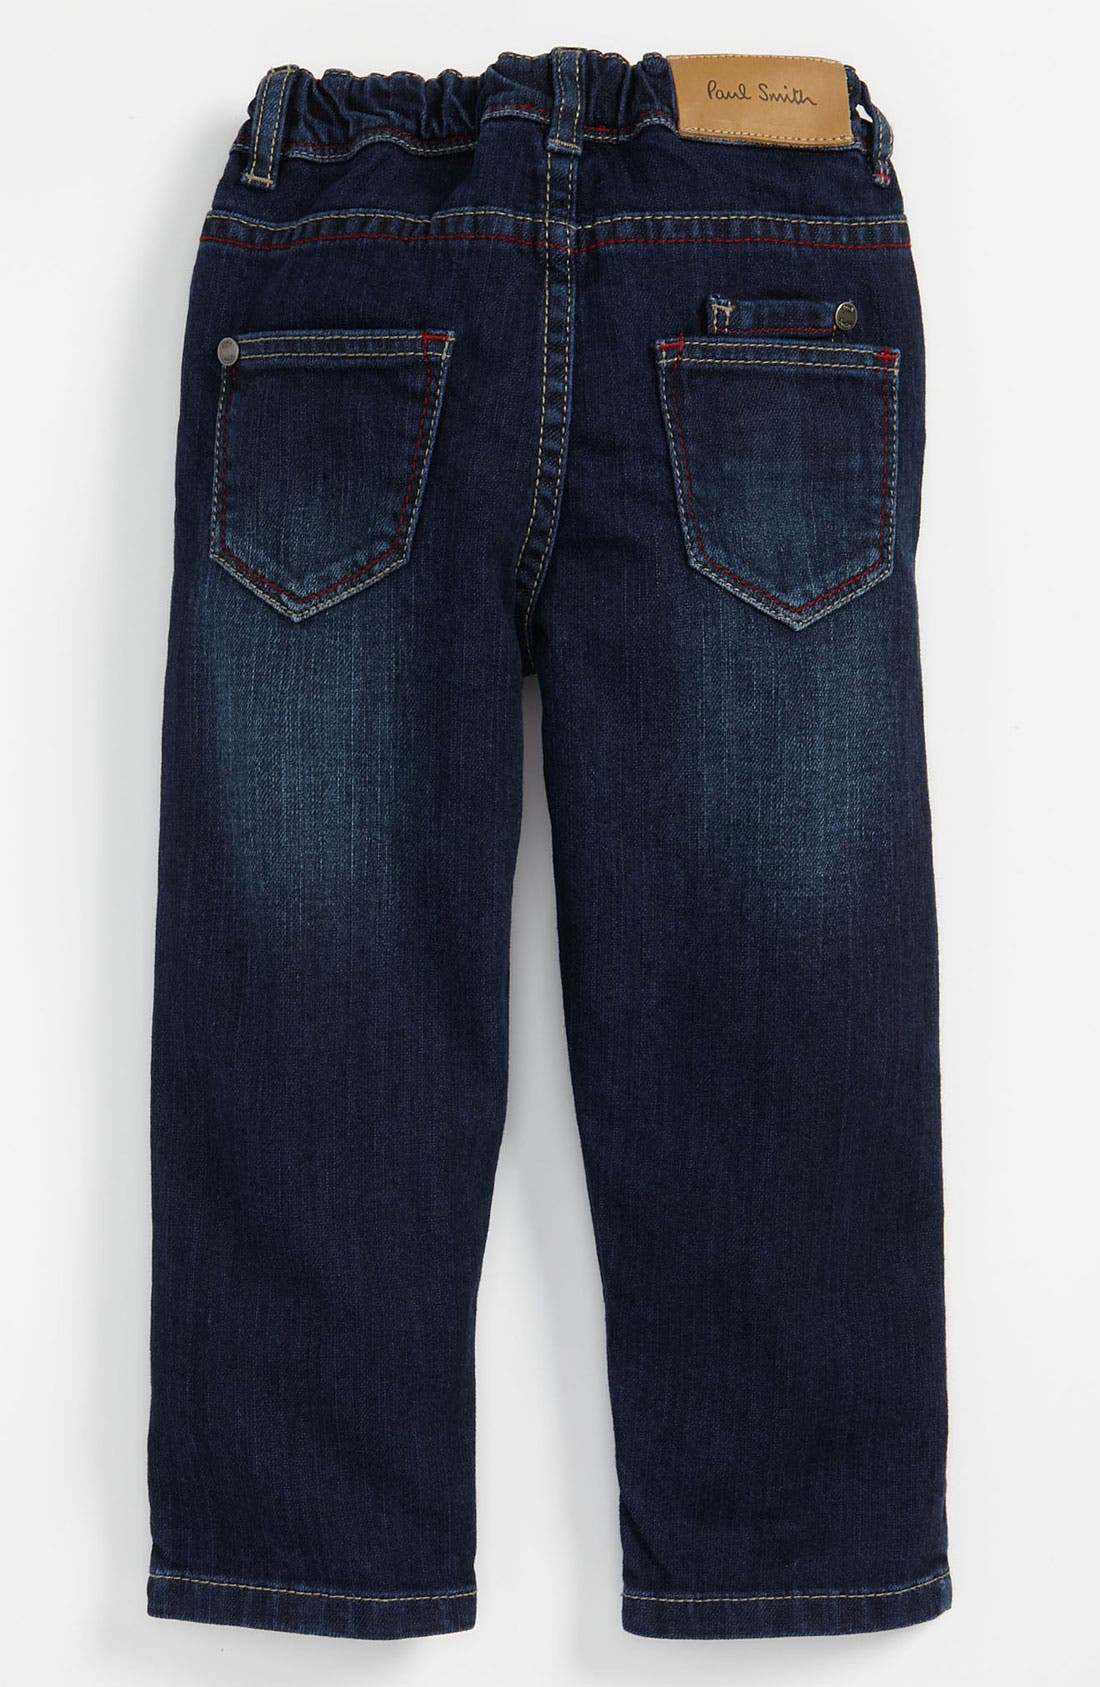 Alternate Image 1 Selected - Paul Smith Junior 'Colby' Jeans (Infant)